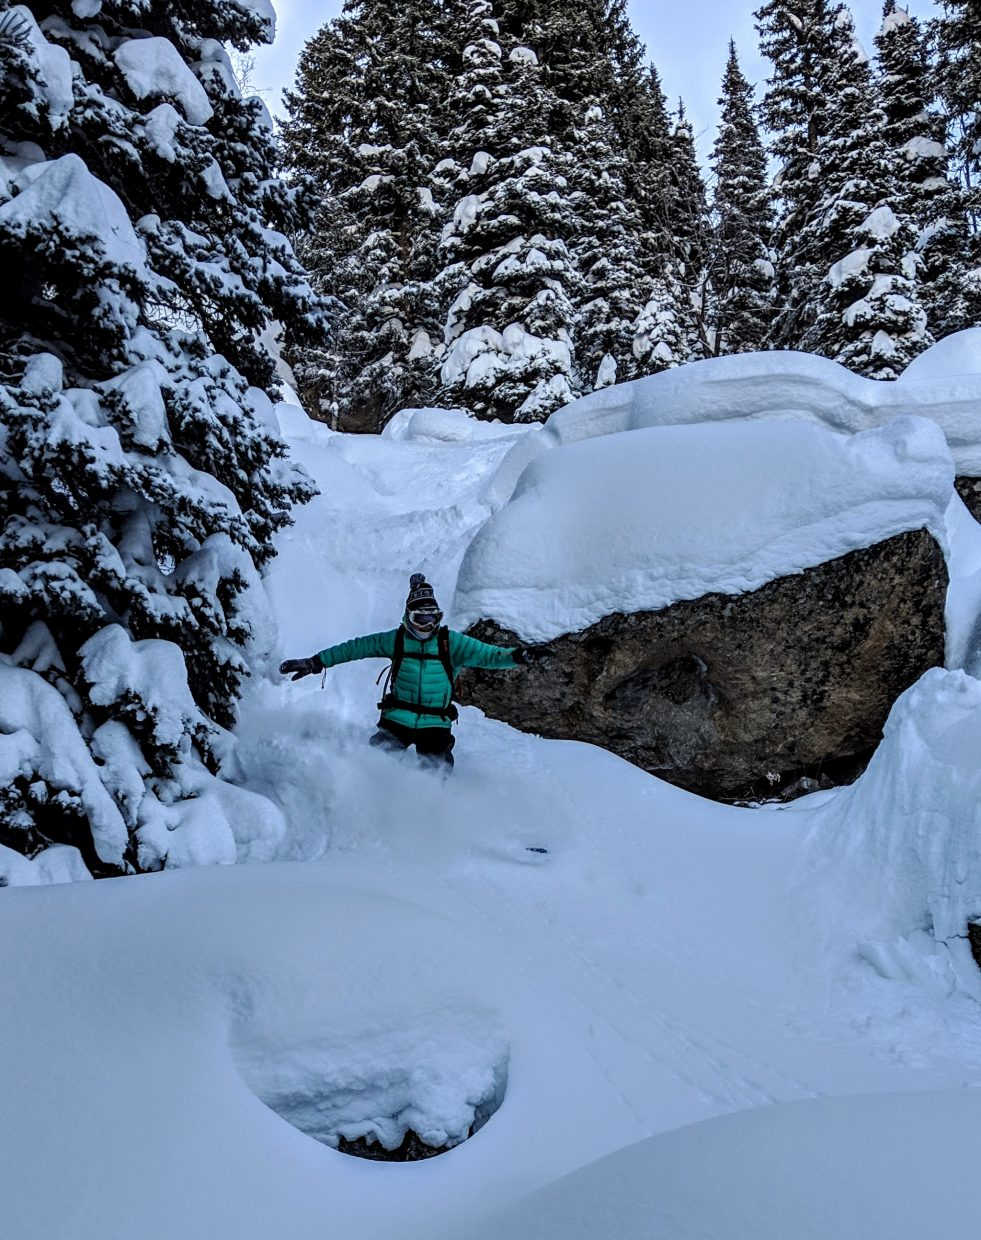 Matthew Wood shares photos of his backcountry adventures.